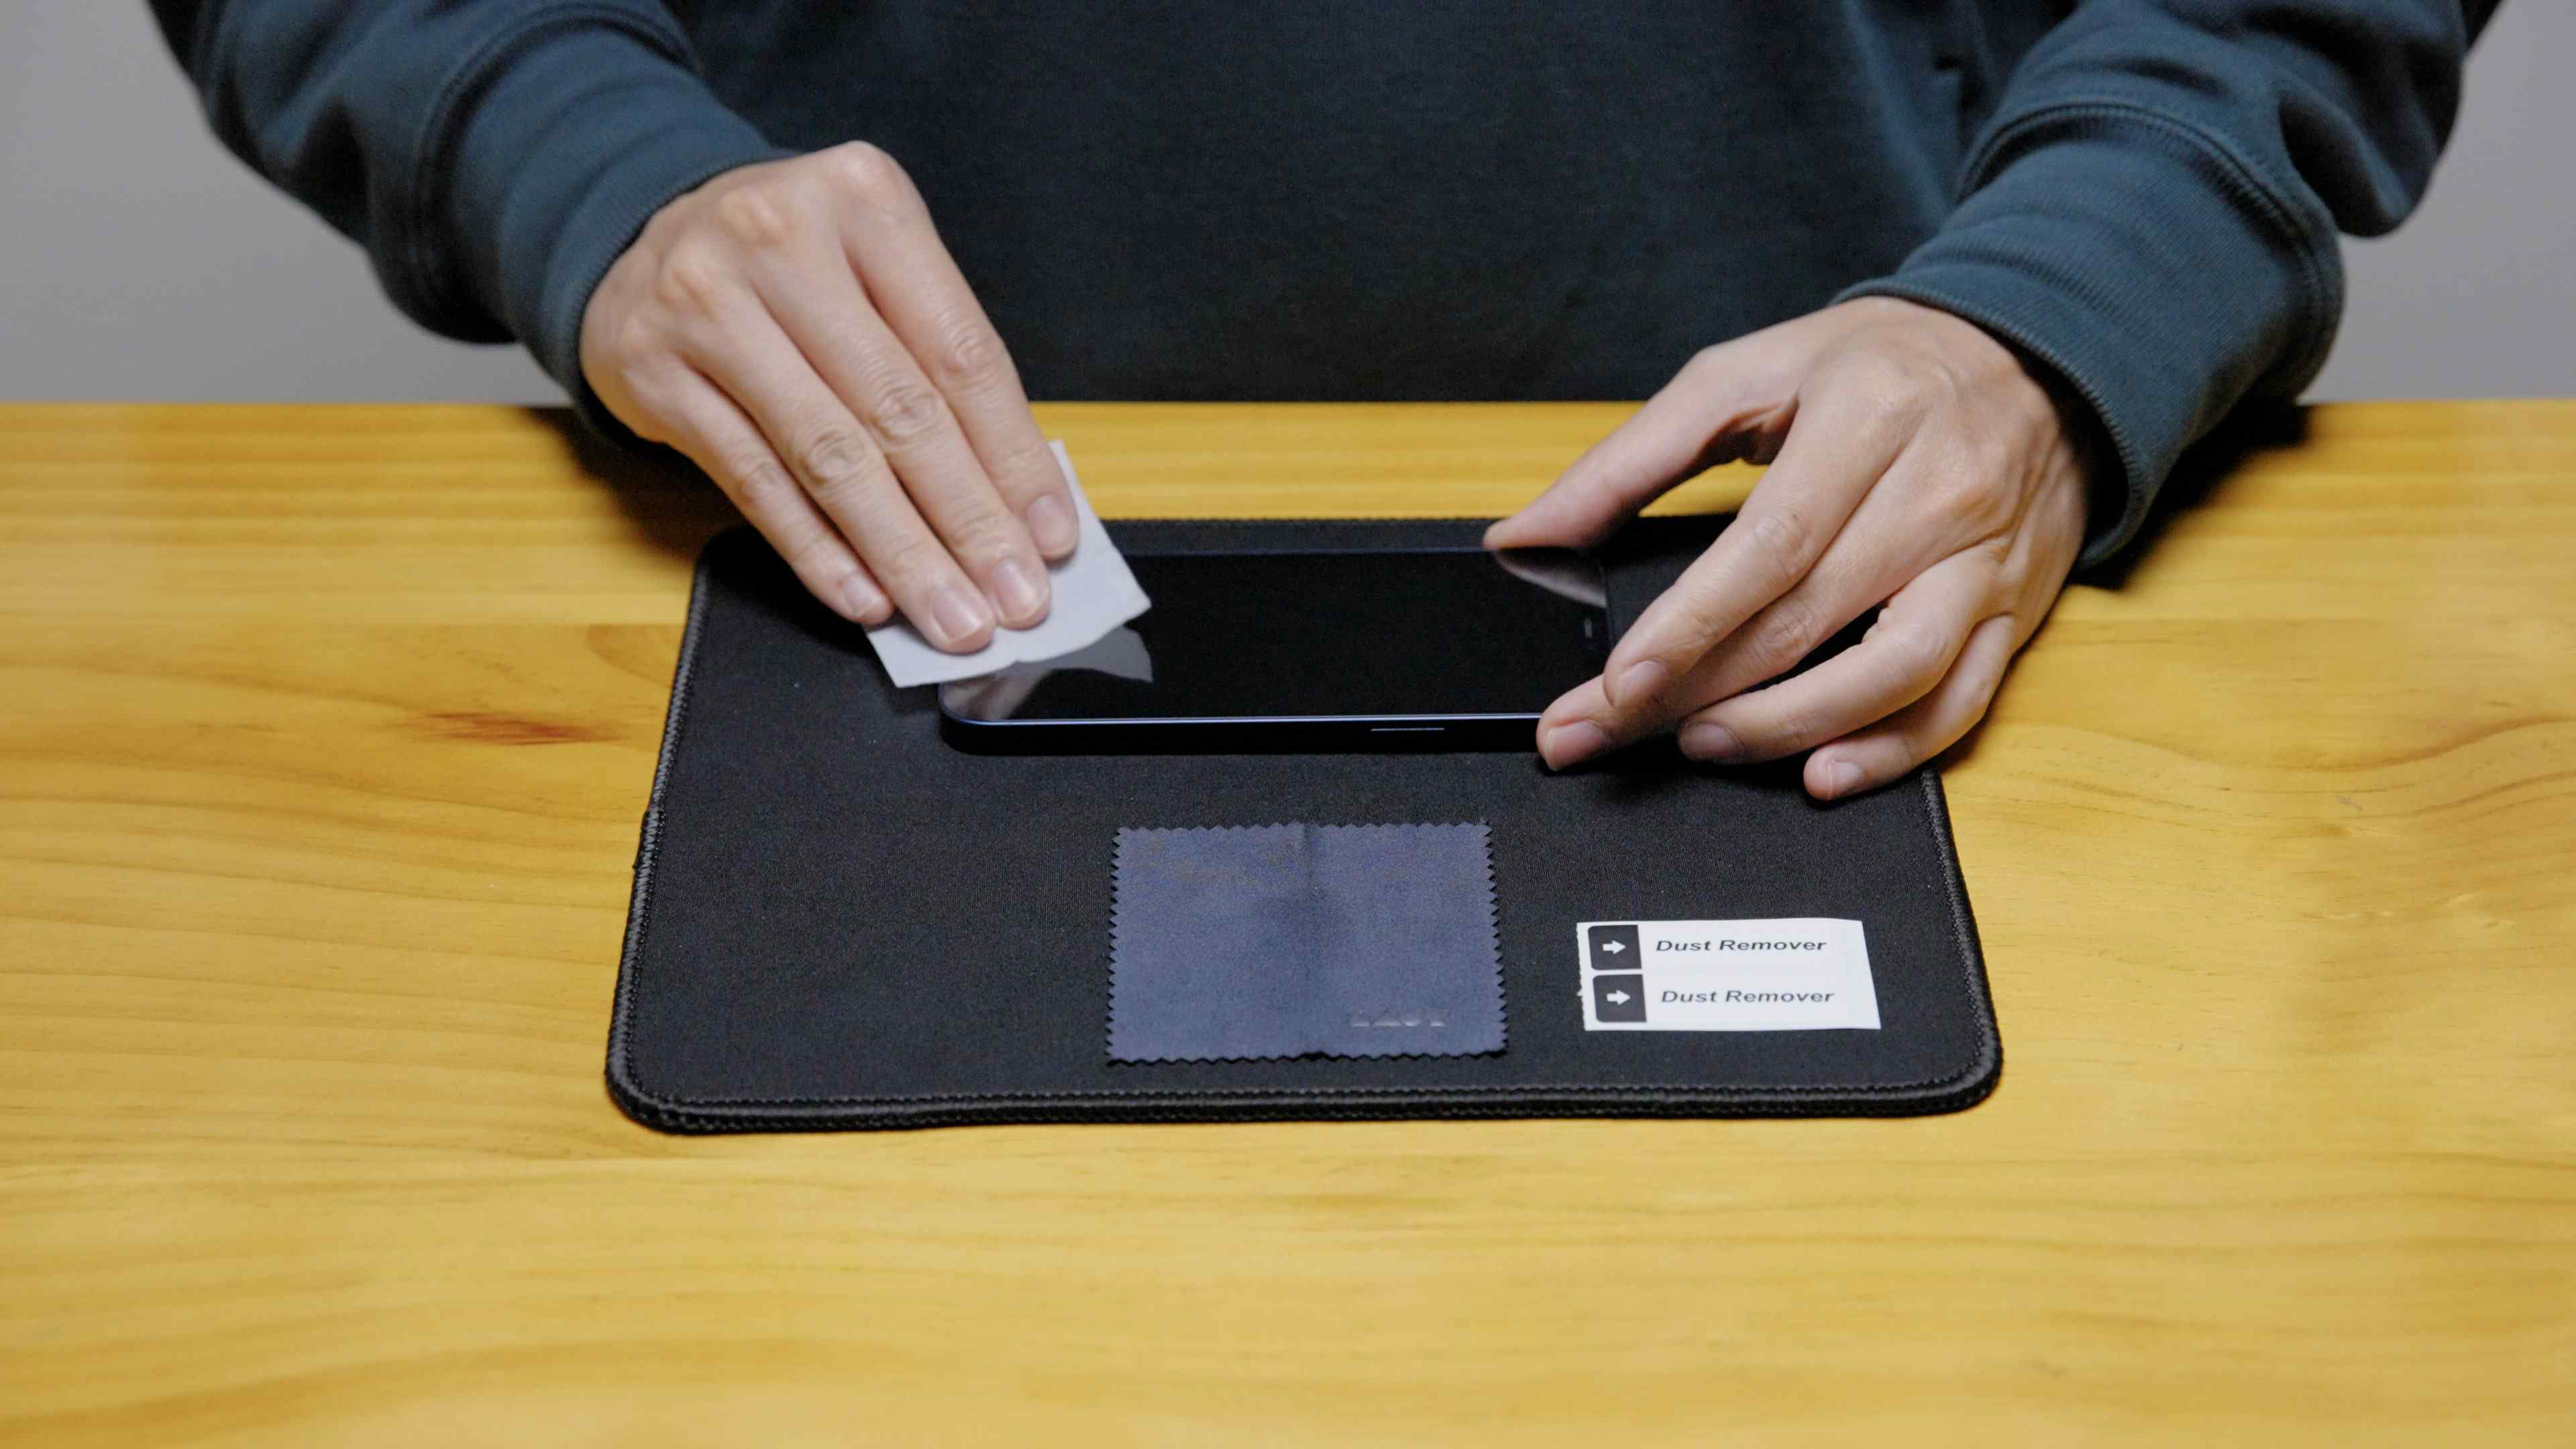 Screen Protector Installation Guide Step 2 : Screen Cleaning